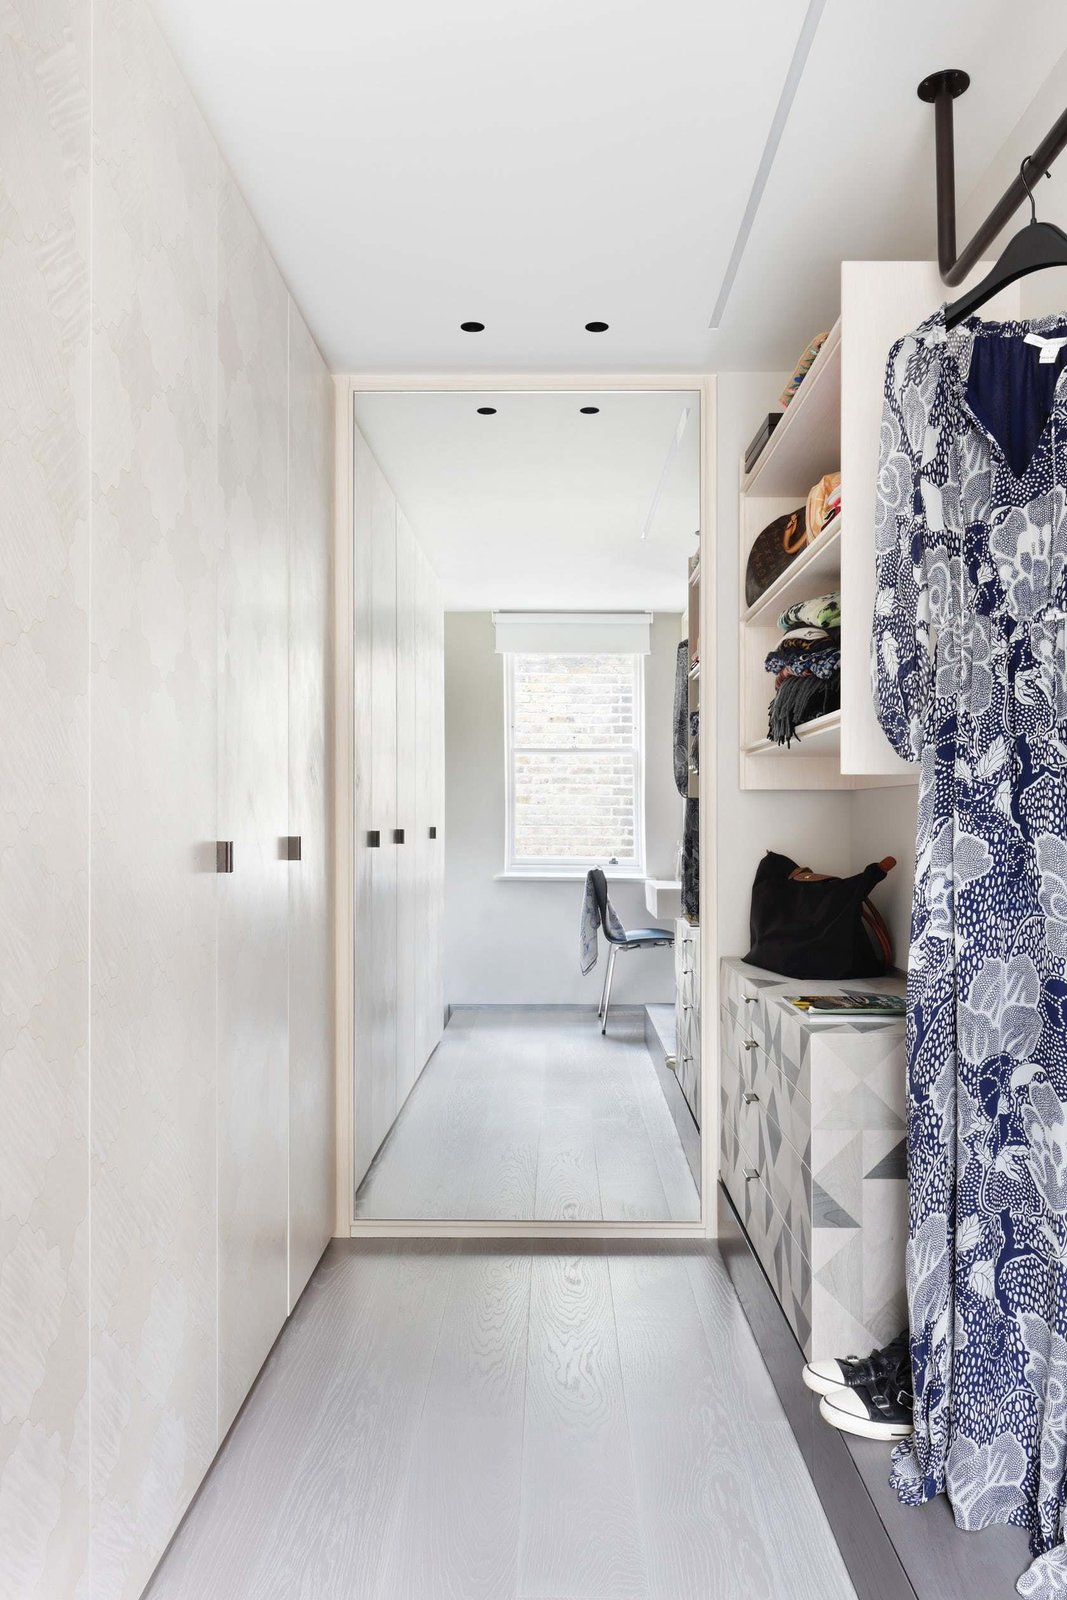 Tagged: Bedroom, Ceiling Lighting, Light Hardwood Floor, and Chair. Maida Vale Apartment by Leibal